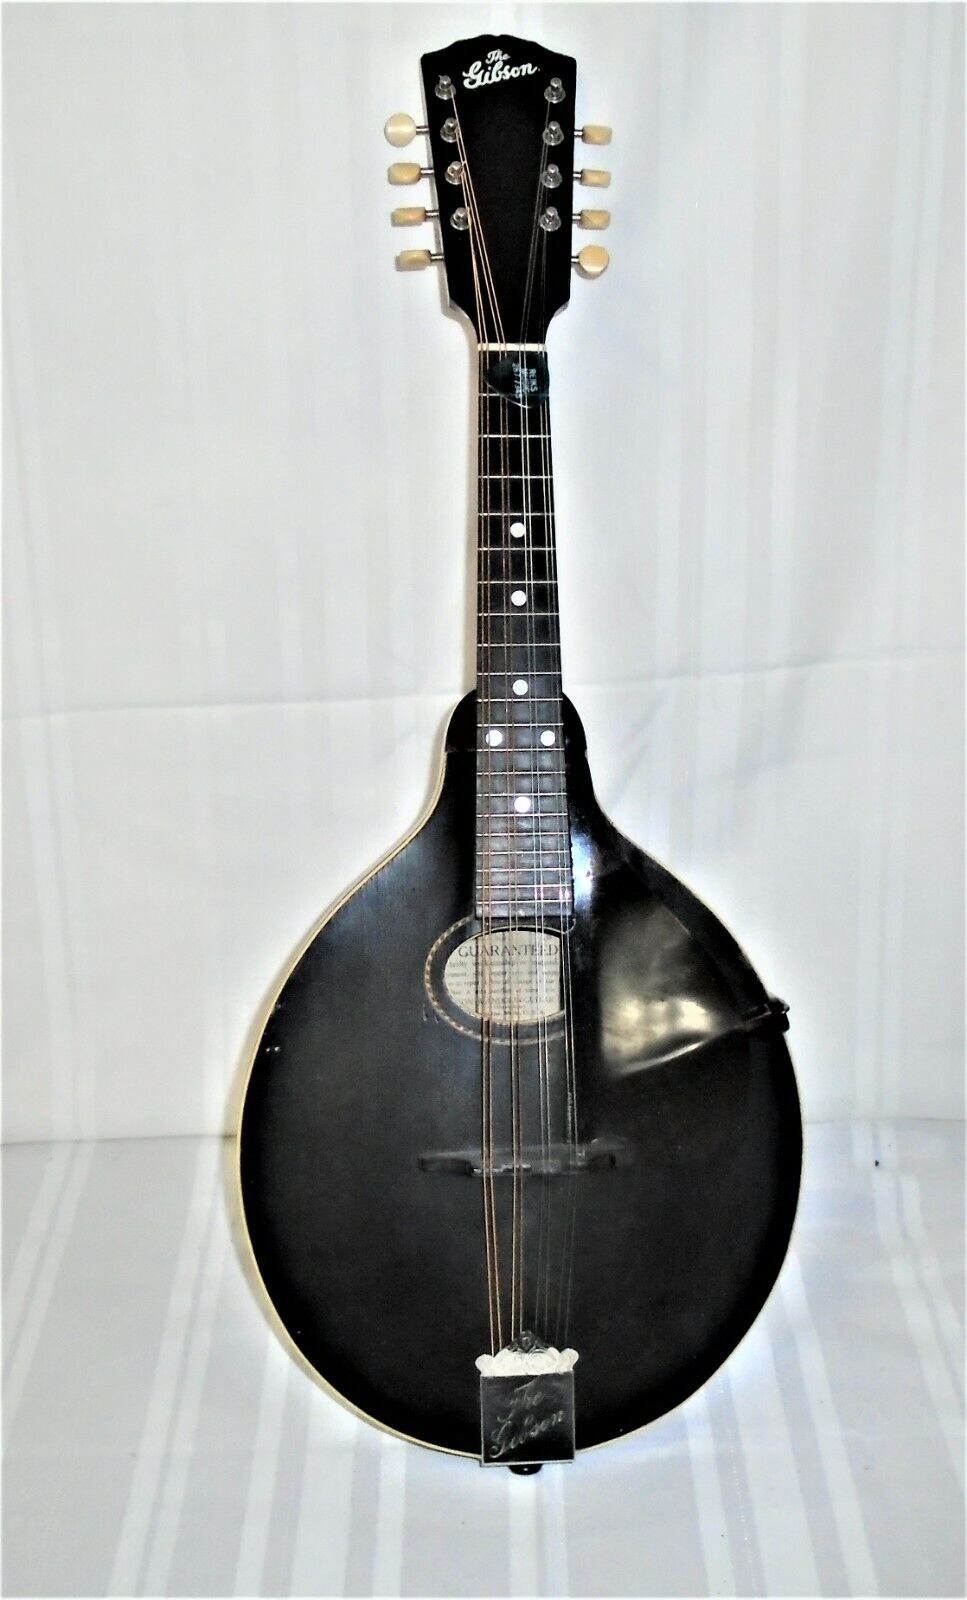 VINTAGE THE GIBSON MANDOLIN MODEL A 1913 WITH NEW HARD CASE FREE SHIPPING FR - $1,100.00